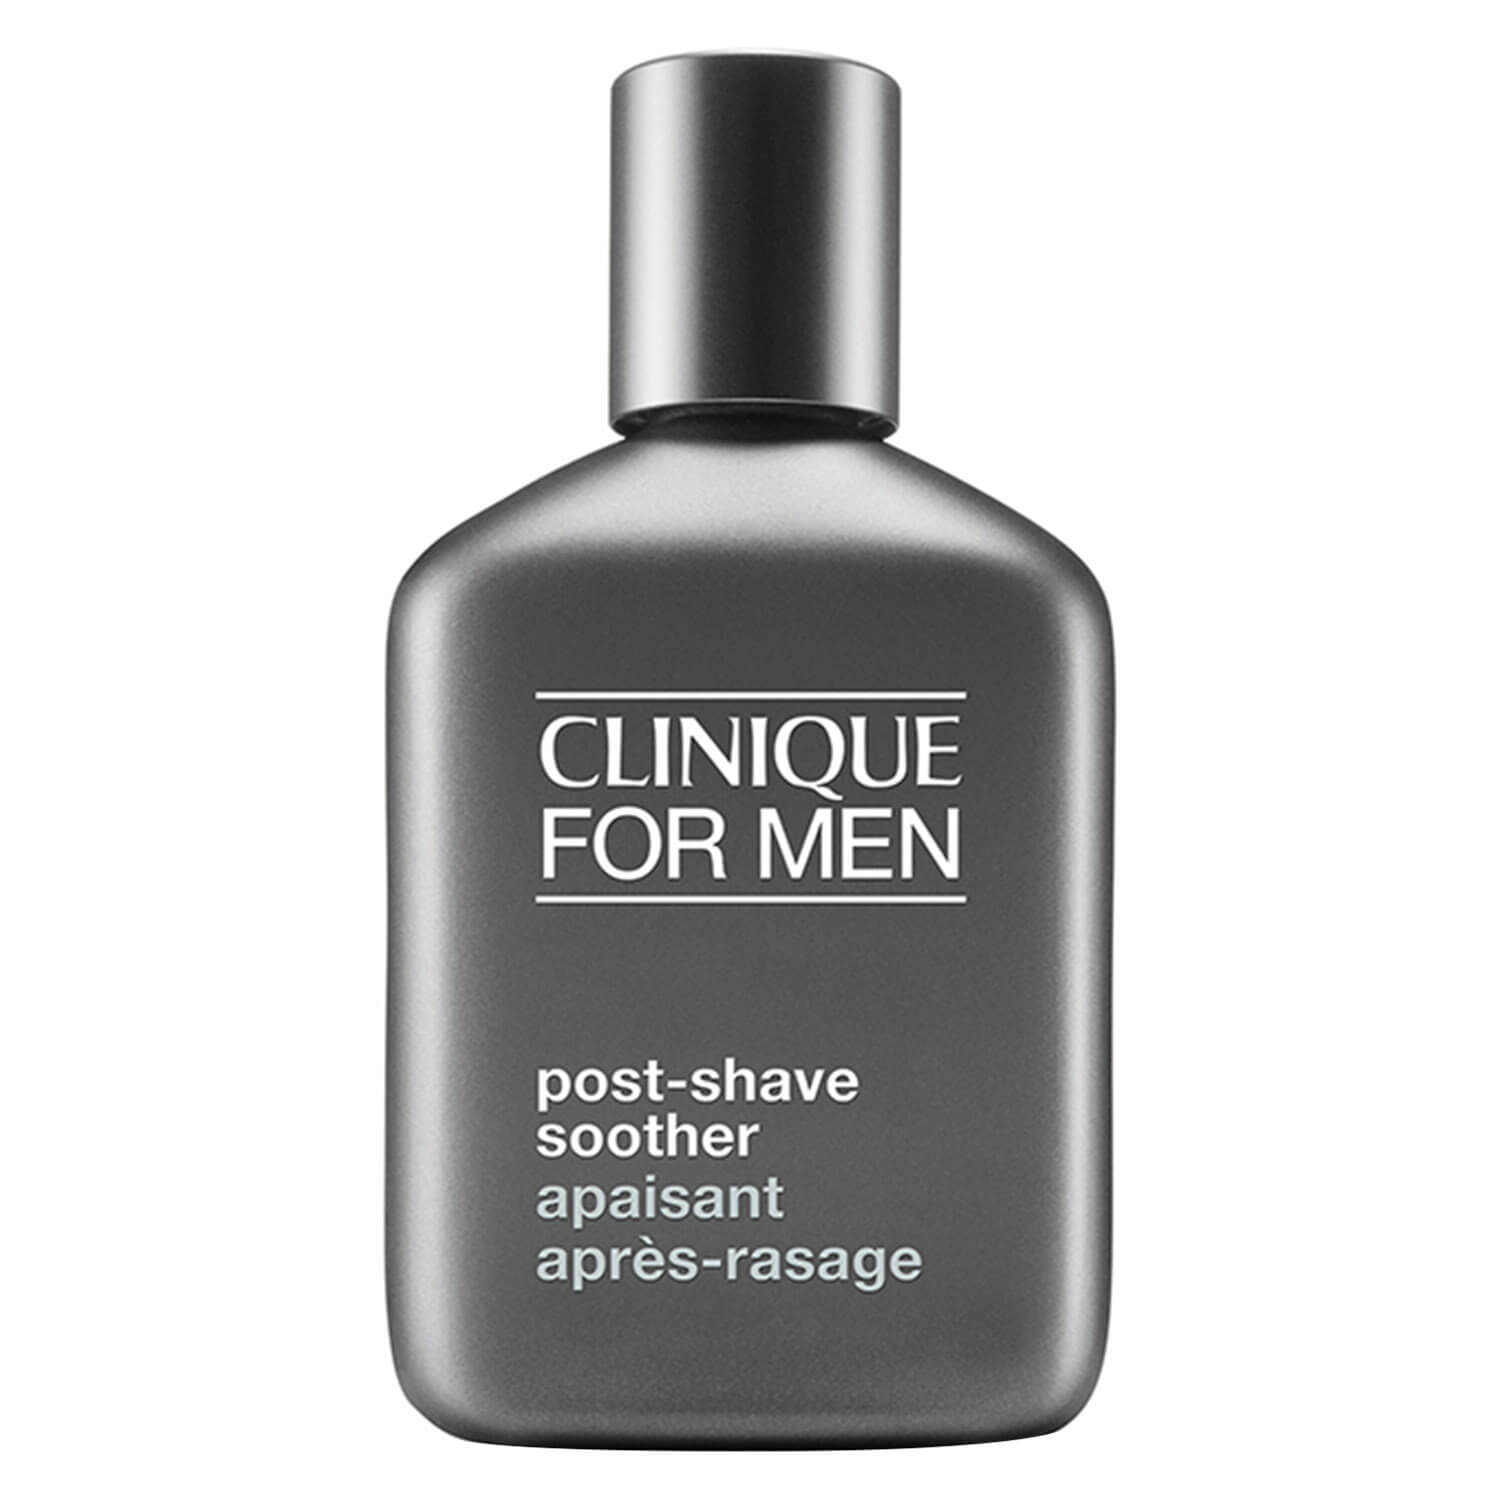 Clinique For Men - Post Shave Soother